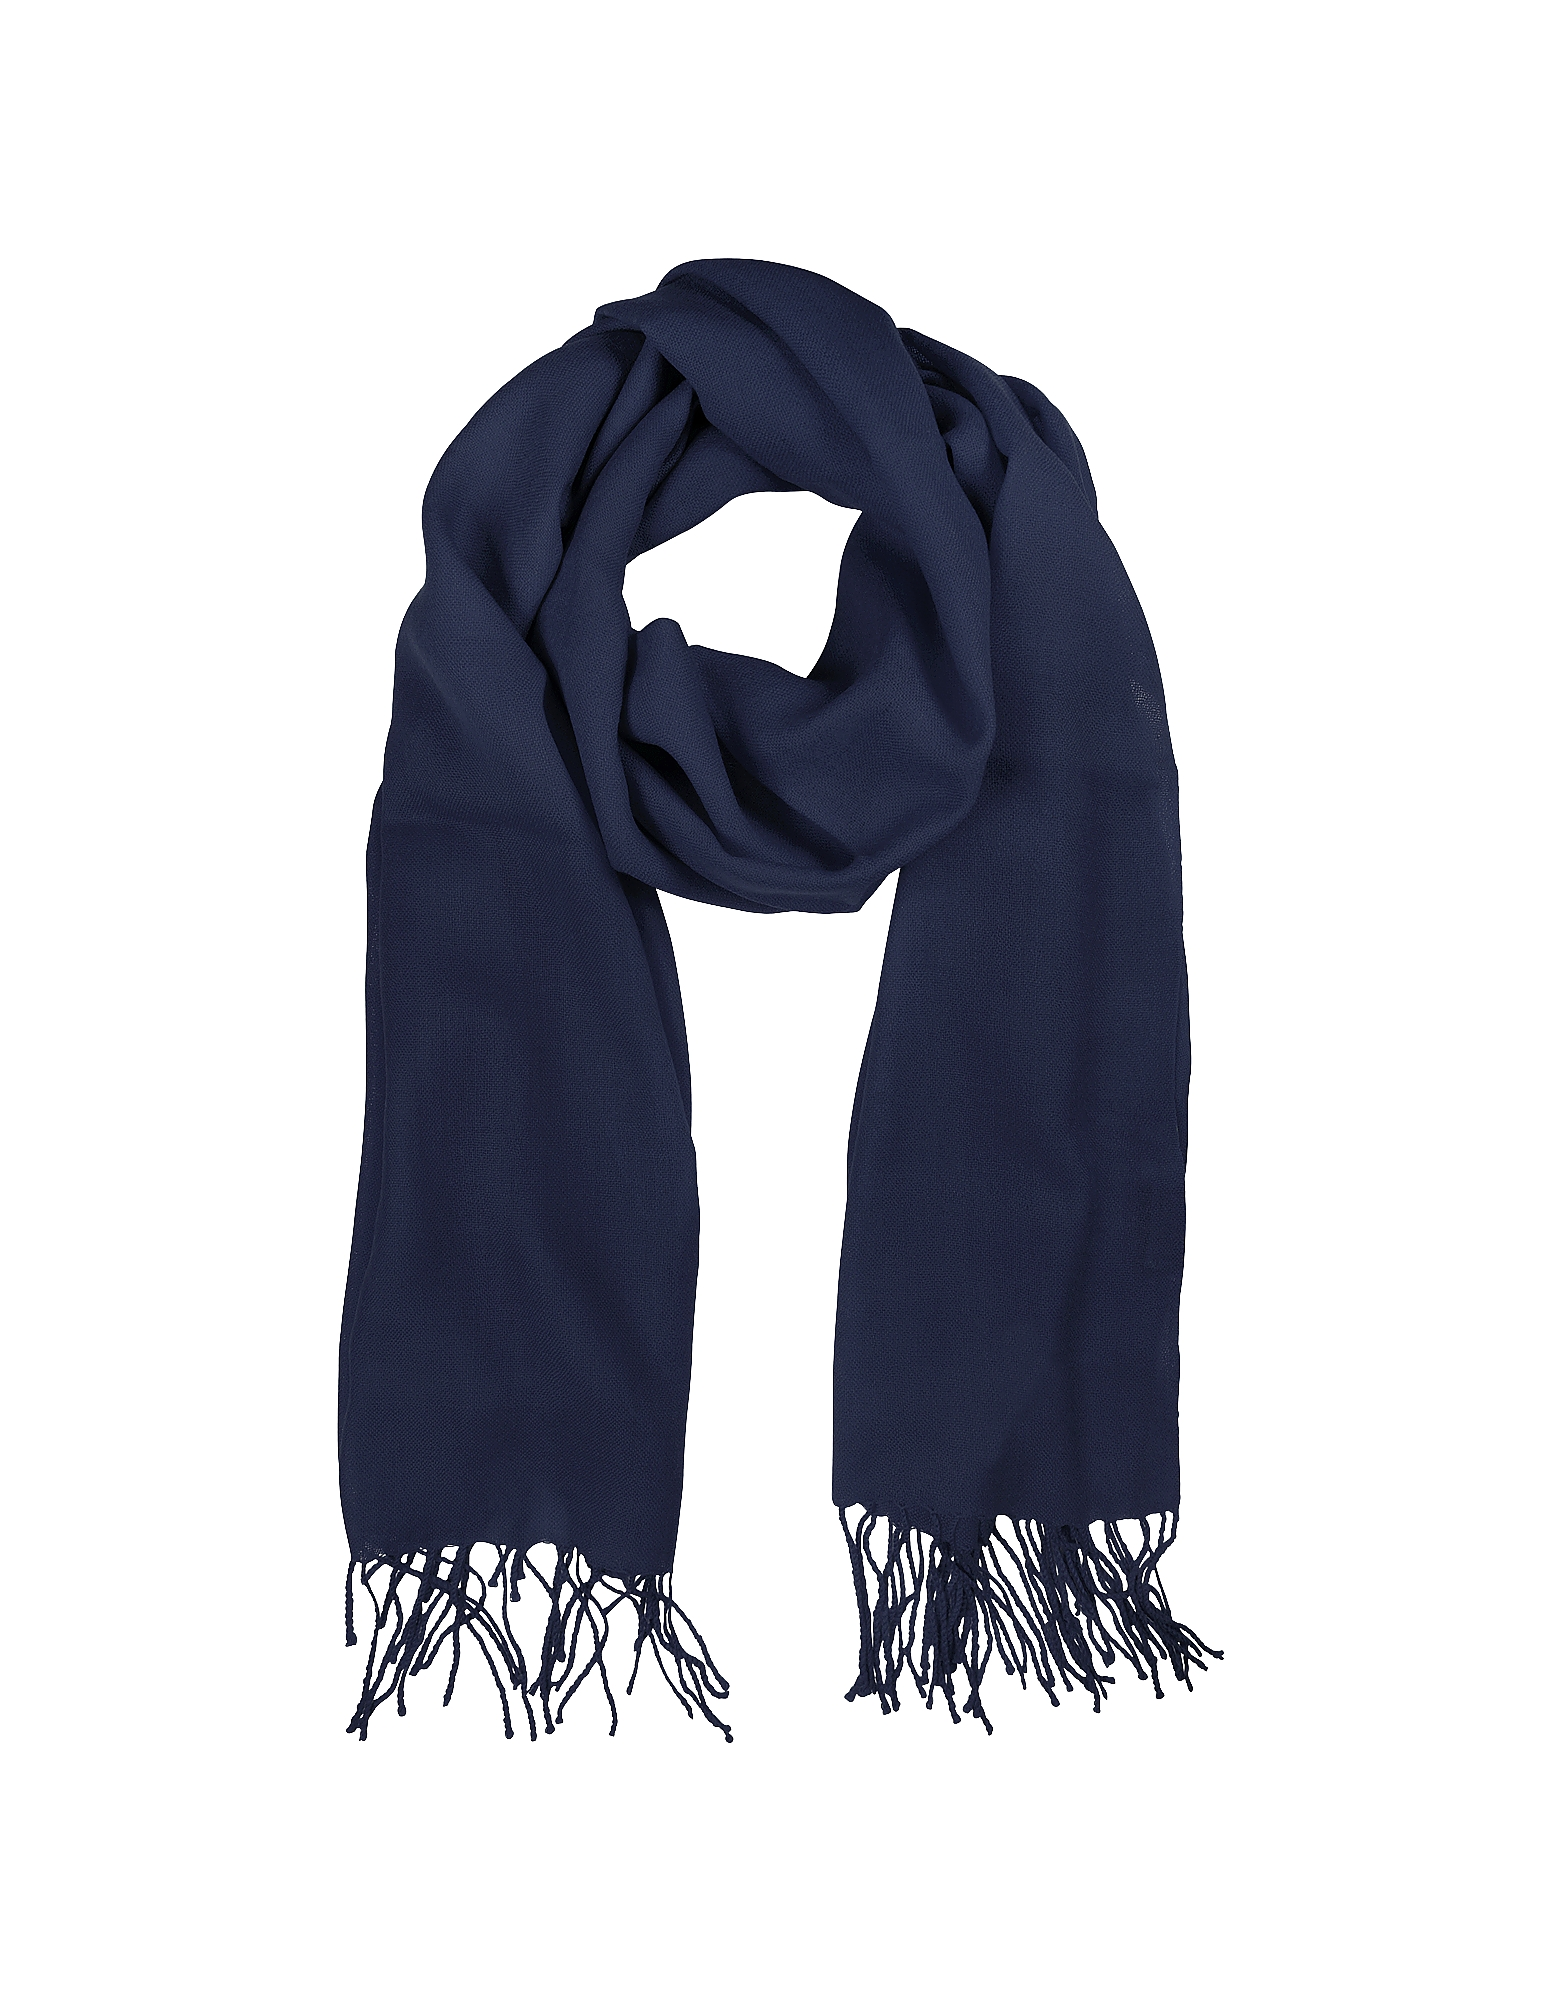 Mila Schon Scarves, Midnight Blue Wool and Cashmere Stole